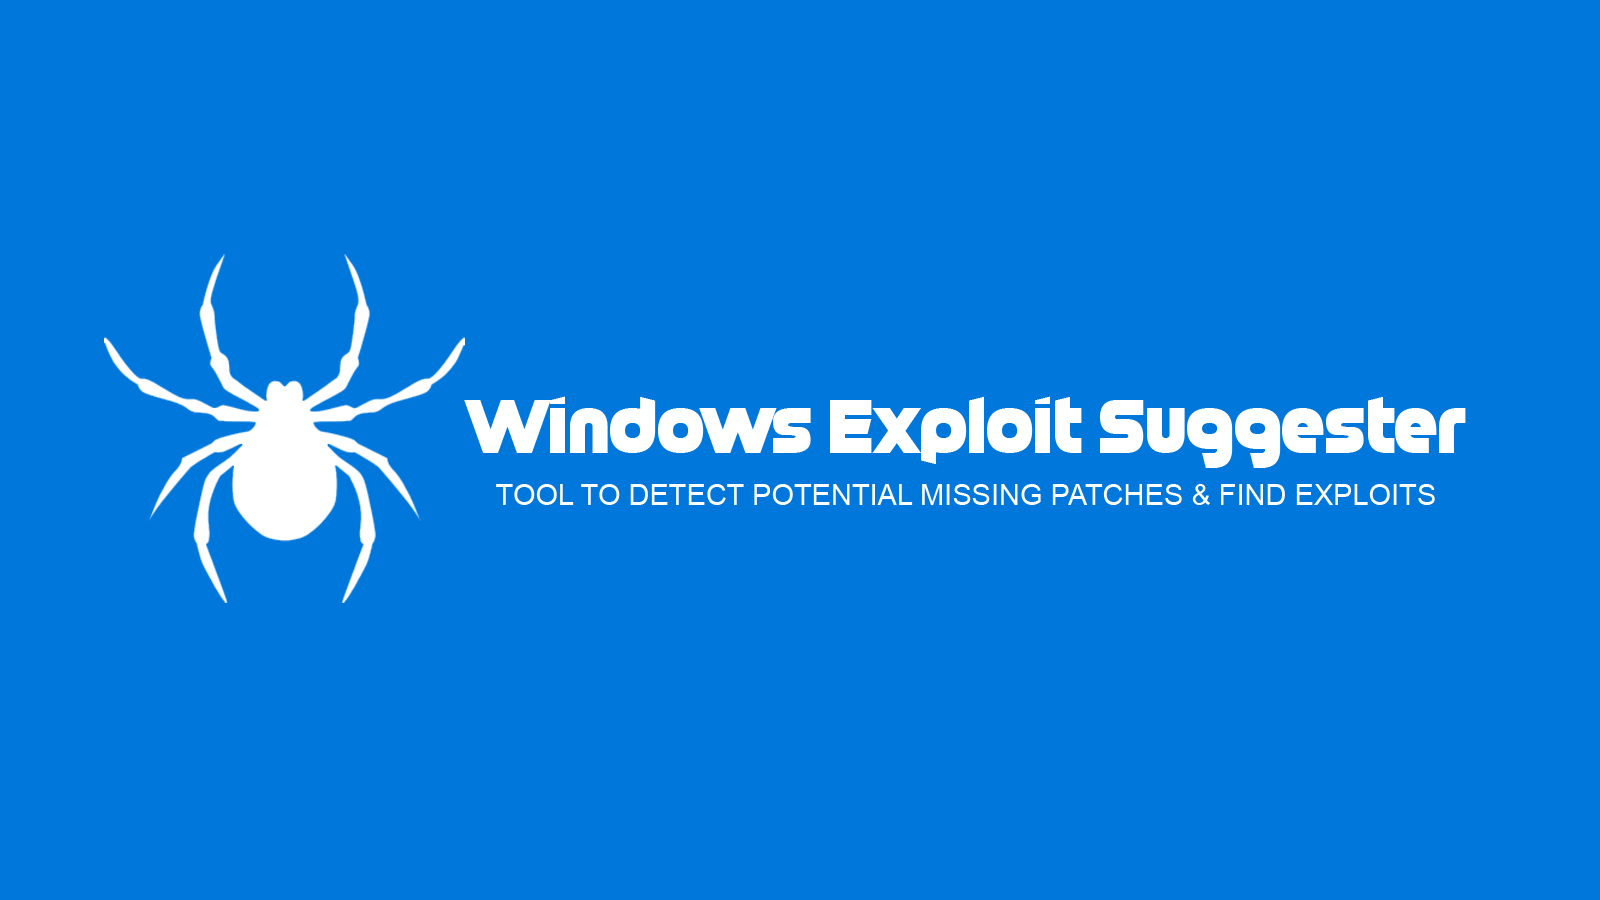 Windows Exploit Suggester - Tool To Detect Potential Missing Patches & Find Exploits